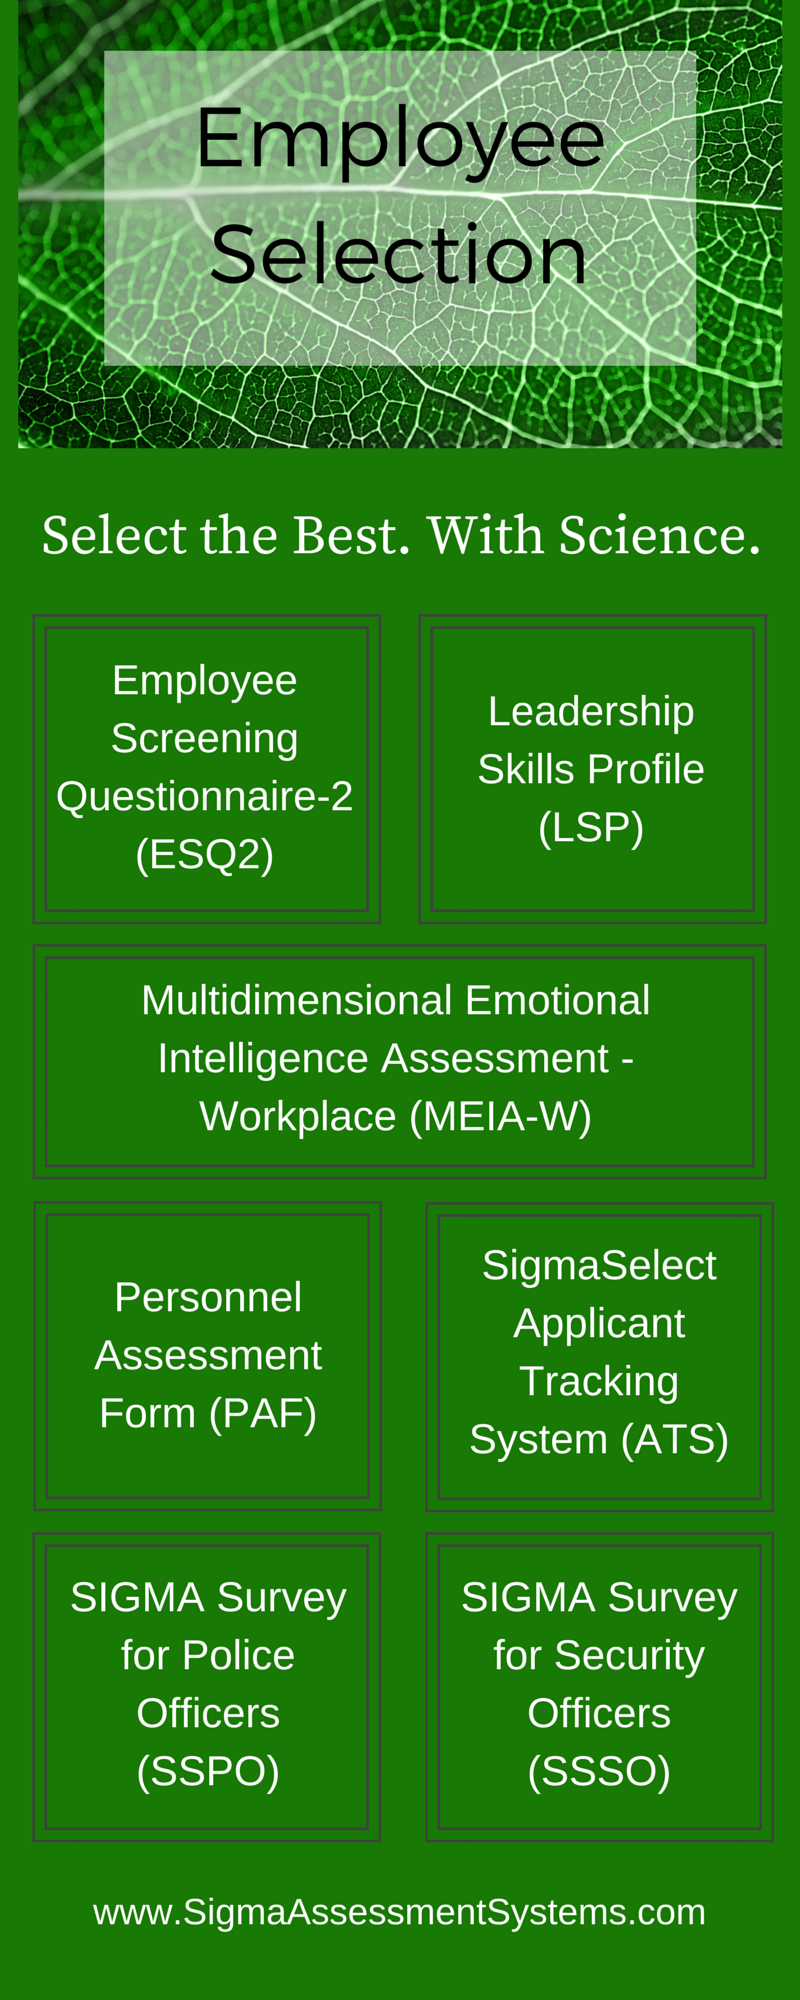 selection test psychological test Psychological testing in personnel selection selectio group is the leading group specialized in executive search and strategic hr consulting in croatia.